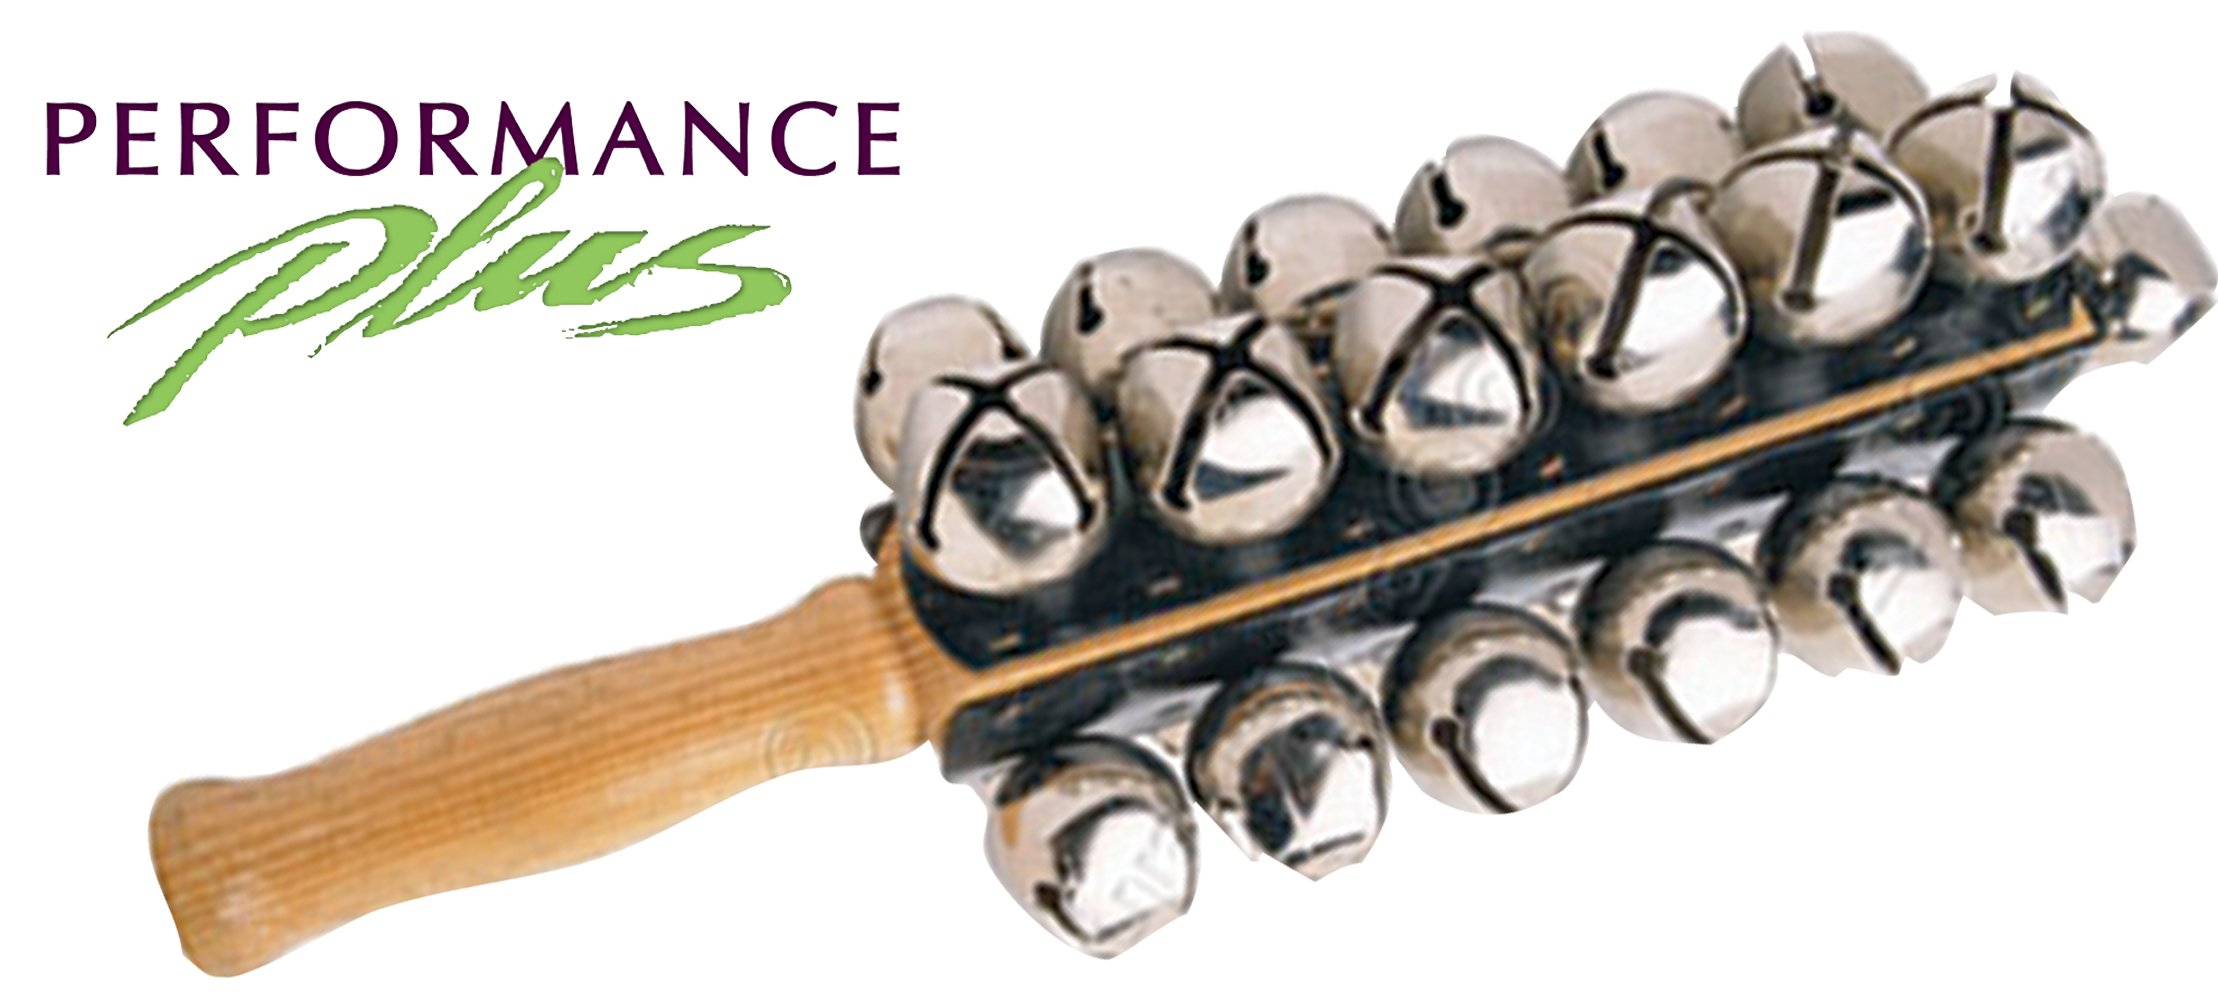 Performance Plus SBL-25 Professional Sleigh Bells- 25 Nickel Plated Jingle Bells- Four Rows with Hard Rock Maple Handle by Performance Plus